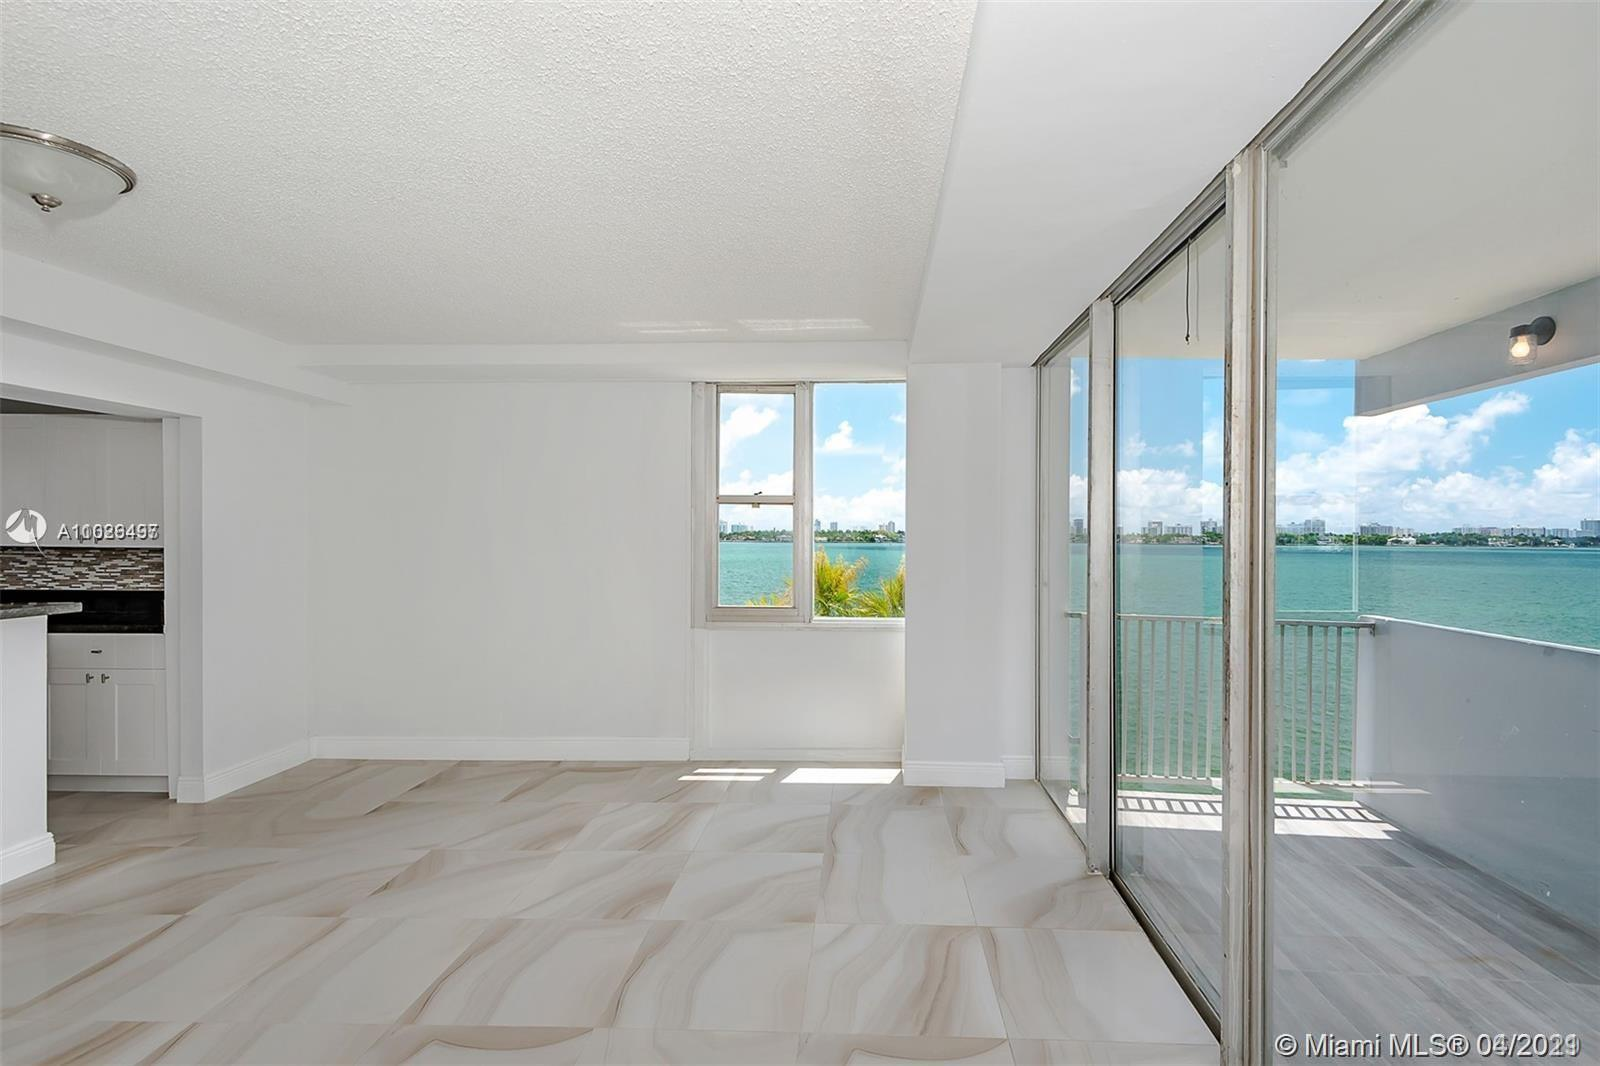 !!!!WONDERFULLY REMODELED CORNER UNIT APARTMENT WITH BEAUTIFUL VIEWS TO THE MIAMI BAY AND MIAMI BEAC